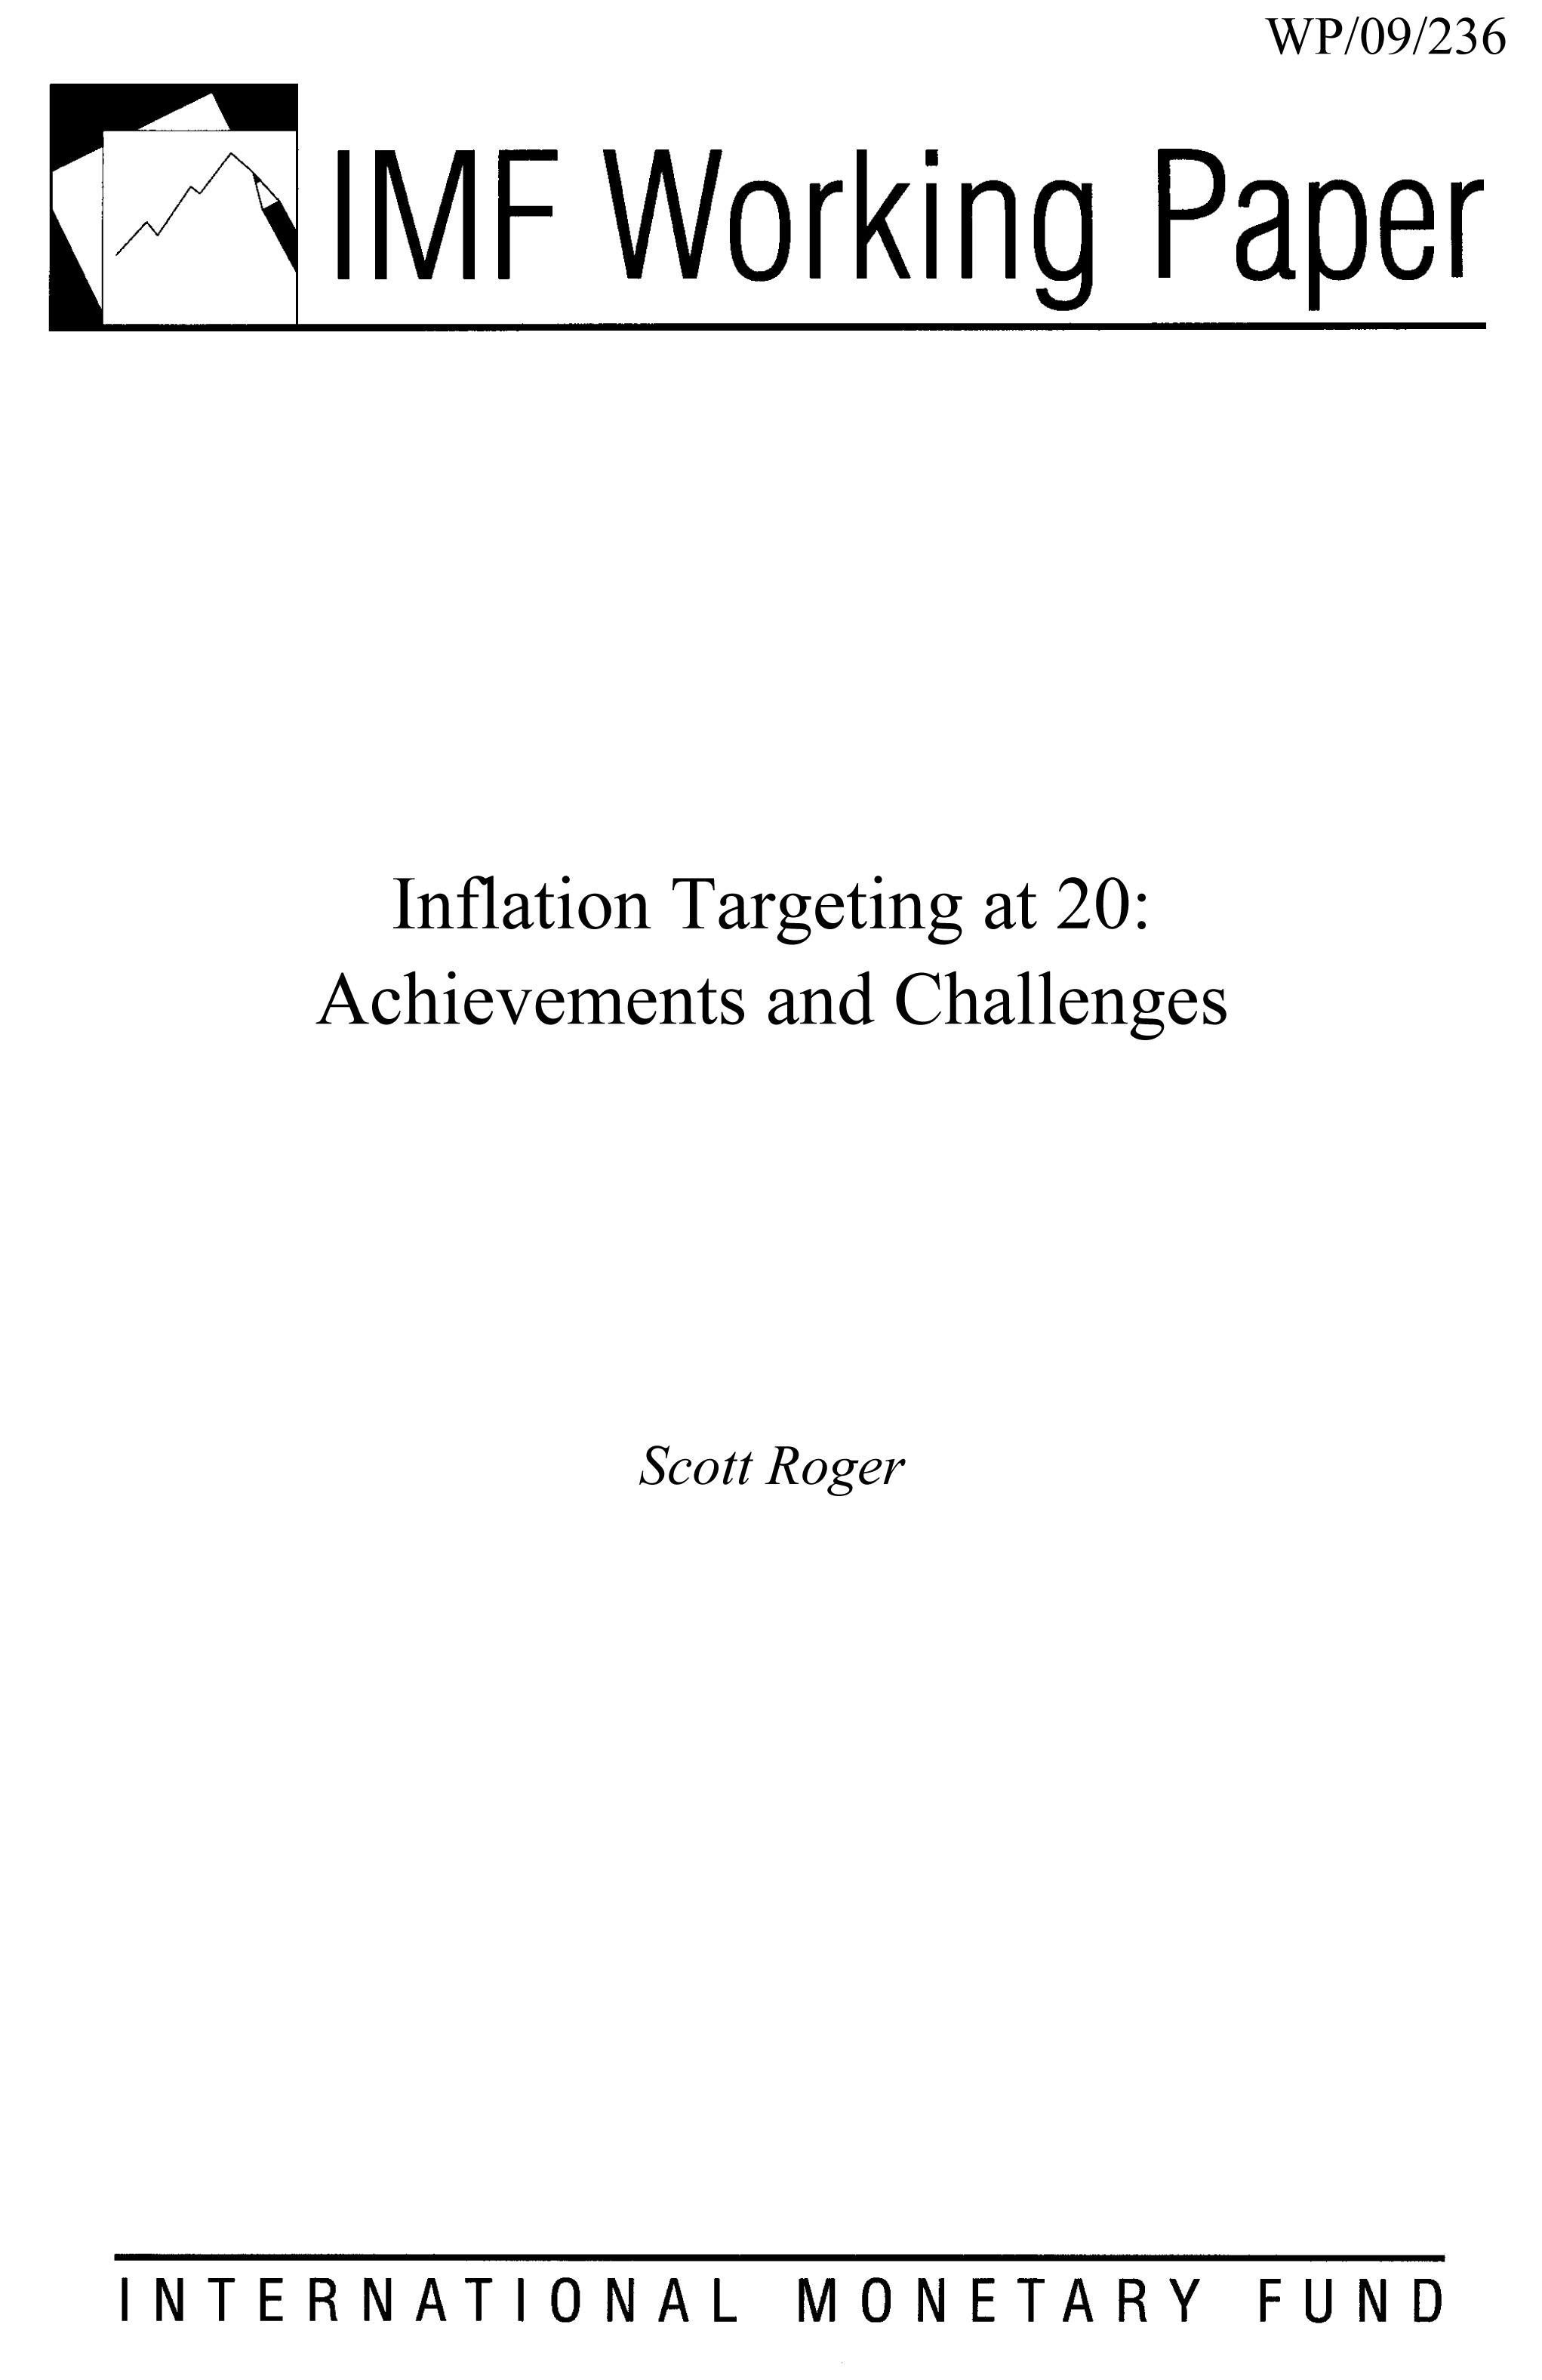 Inflation Targeting at 20: Achievements and Challenges